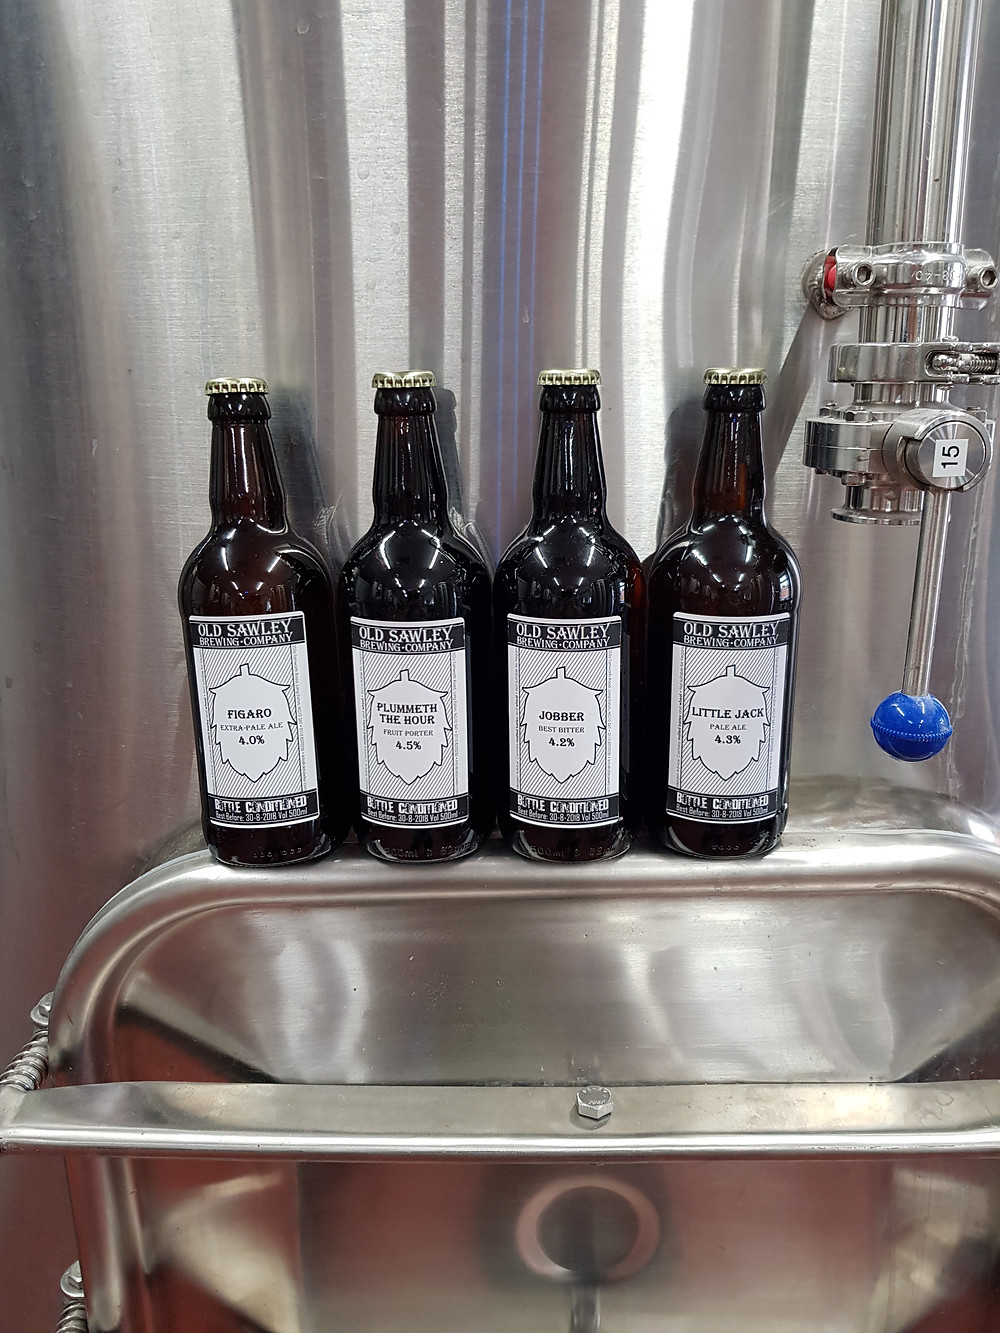 bottled beer, old sawley brewing co, old sawley